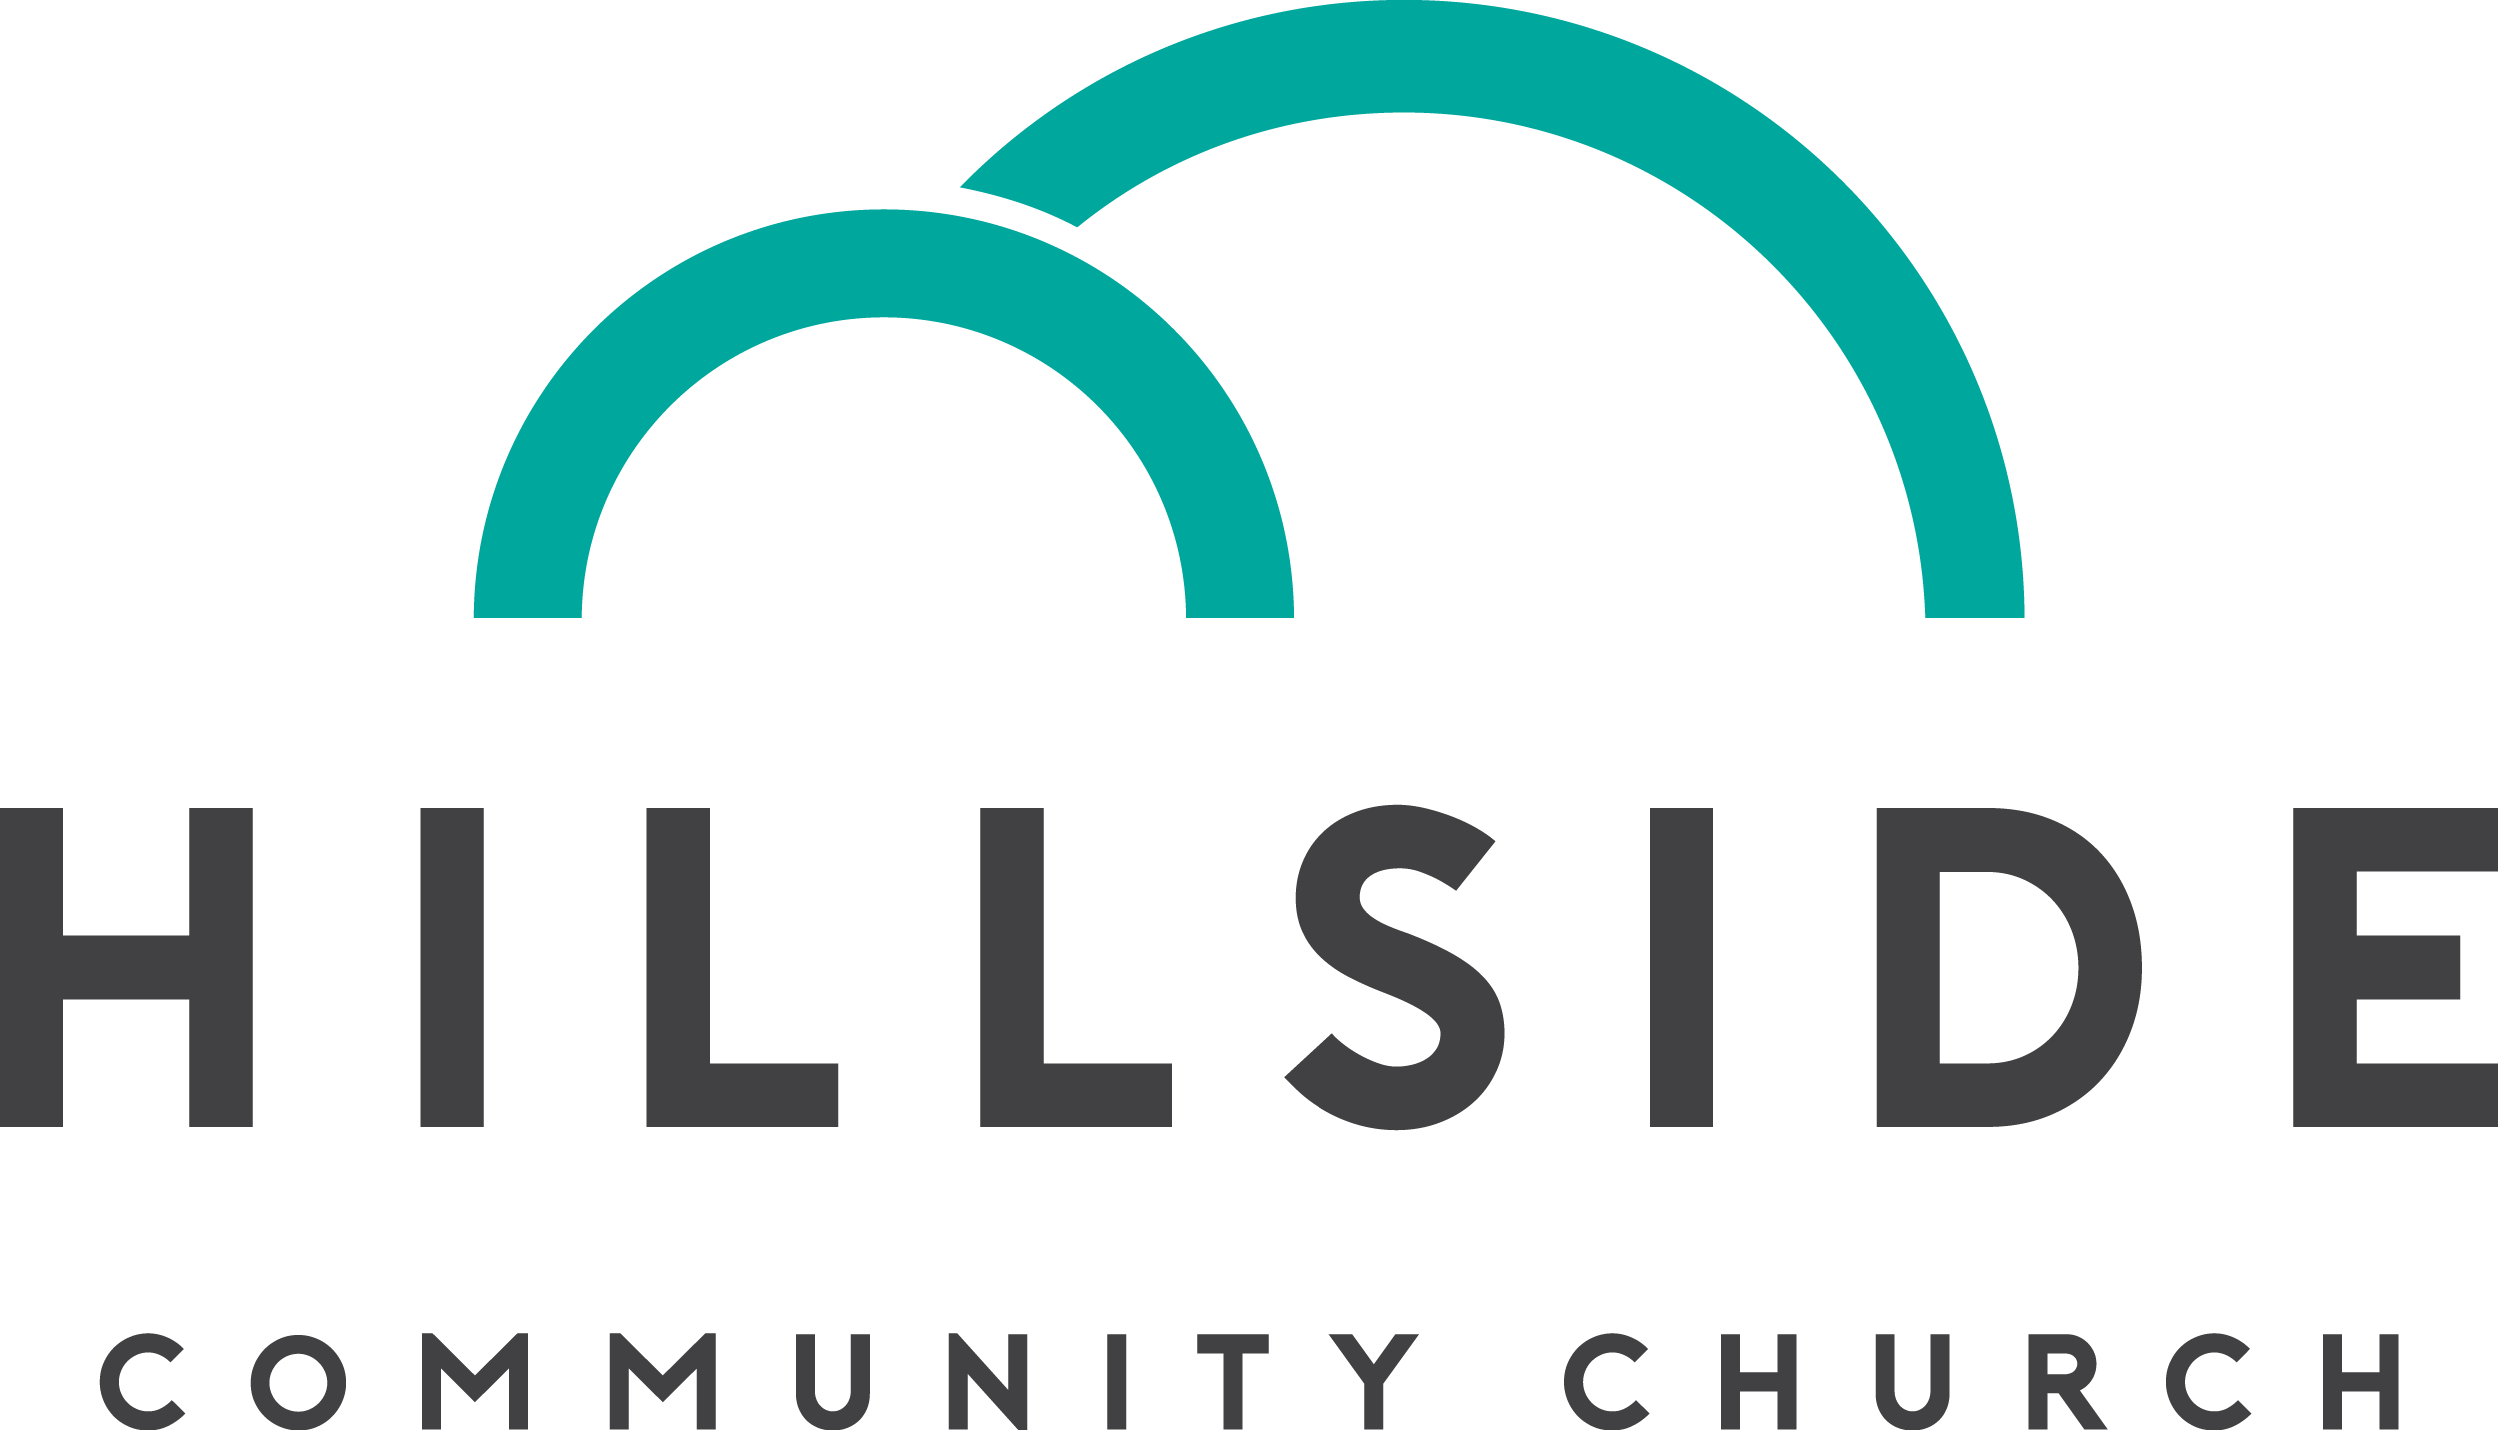 Hillside Community Church